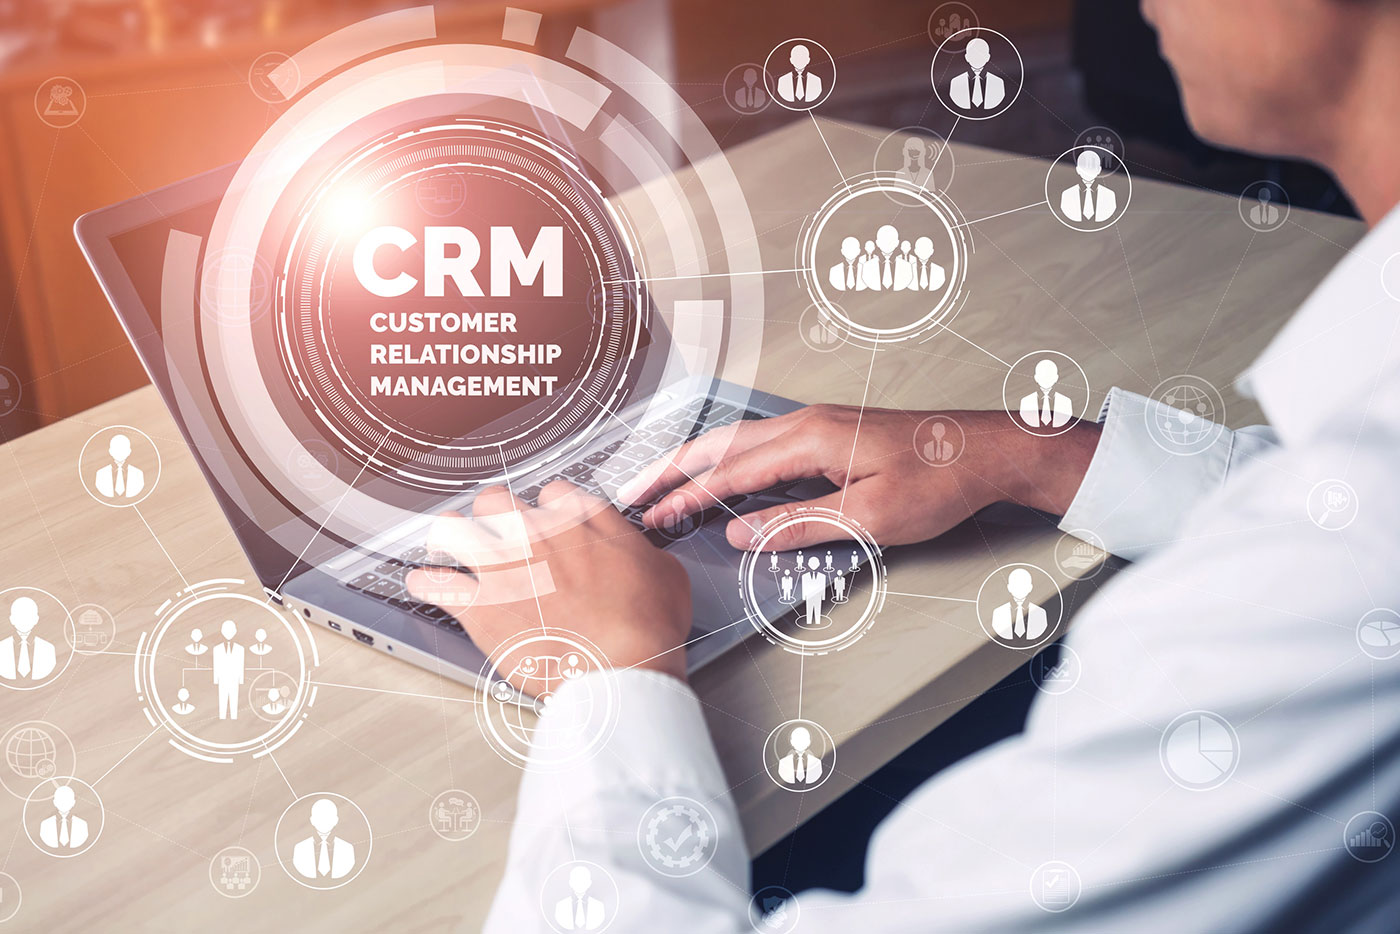 How to Boost B2B Leads with CRM Based Digital Marketing | Learn with Diib®